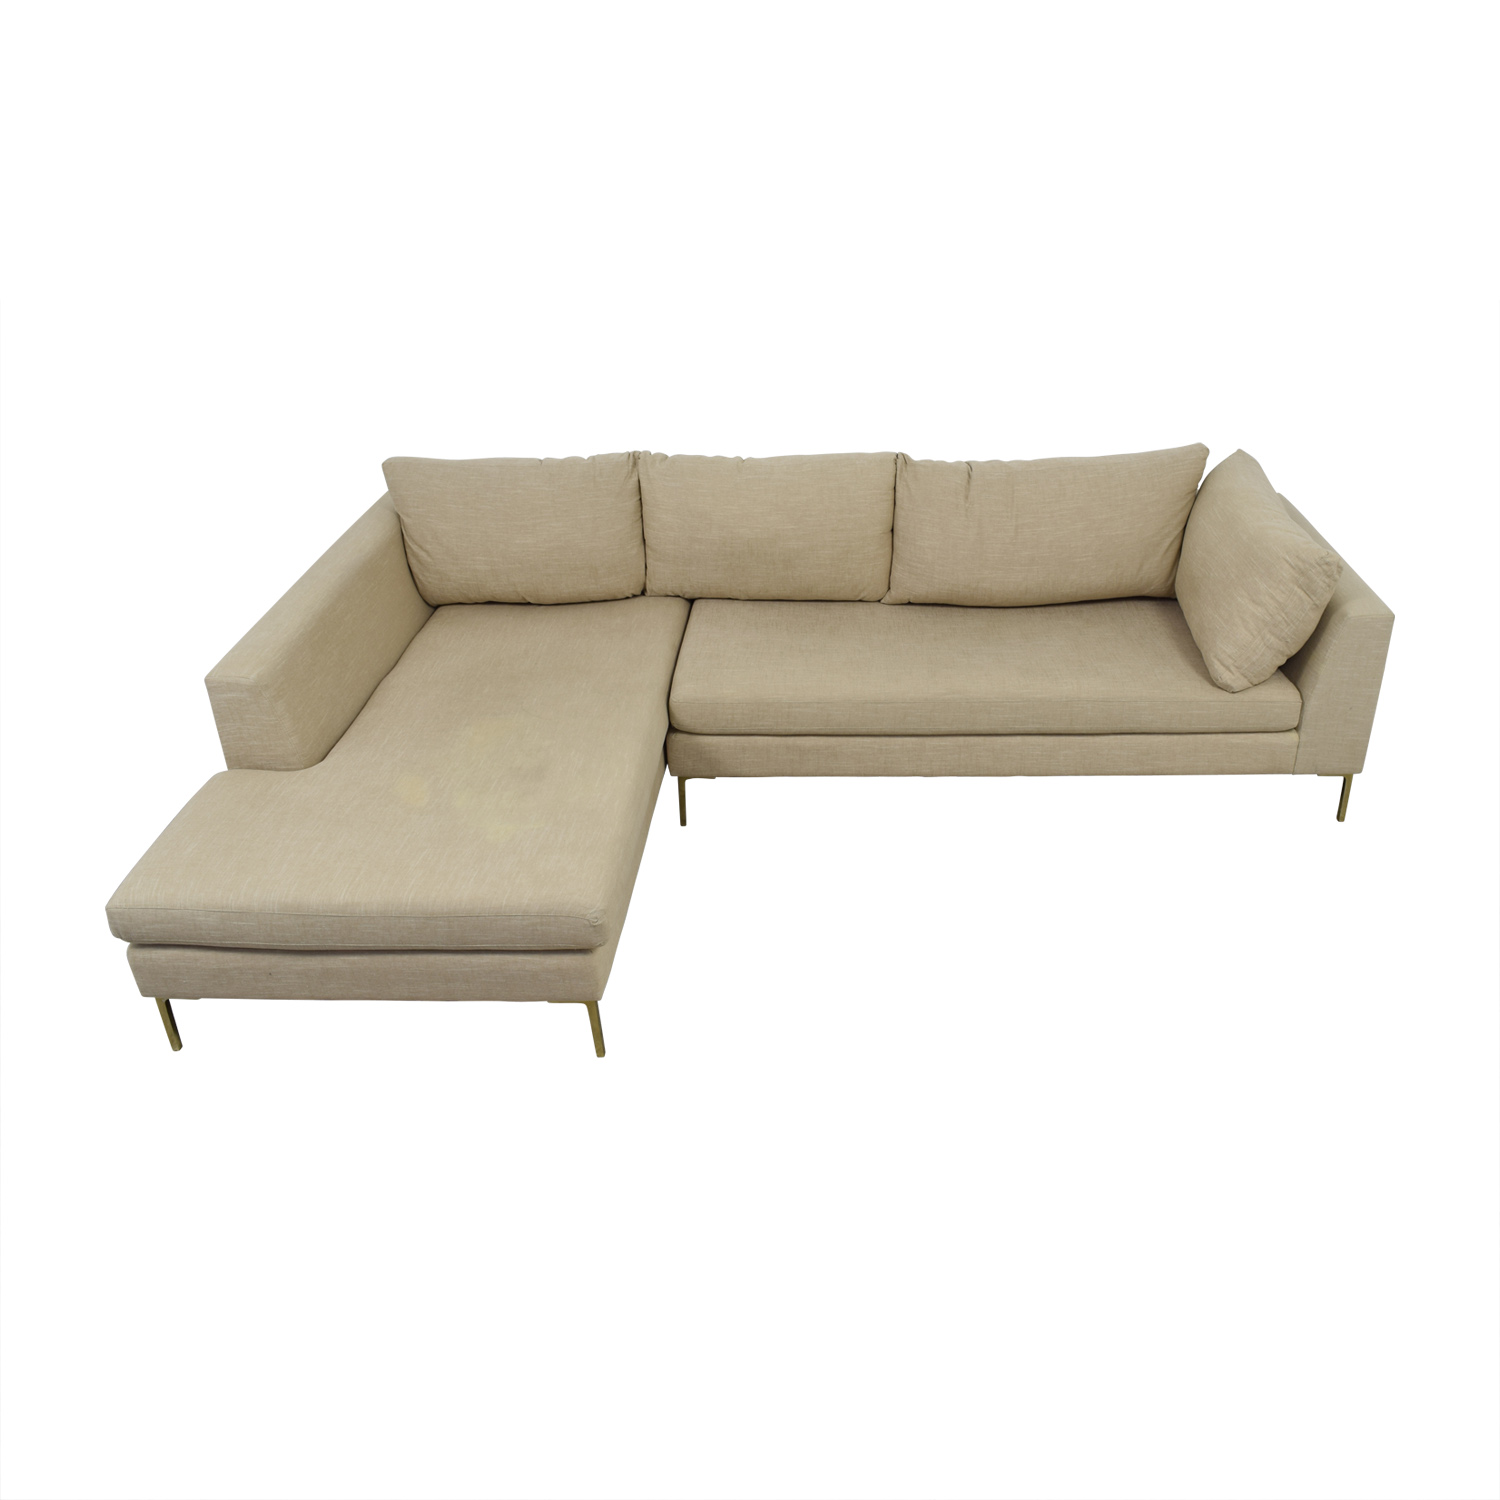 Anthropologie Anthropologie Beige L-Shaped Sectional Sofas